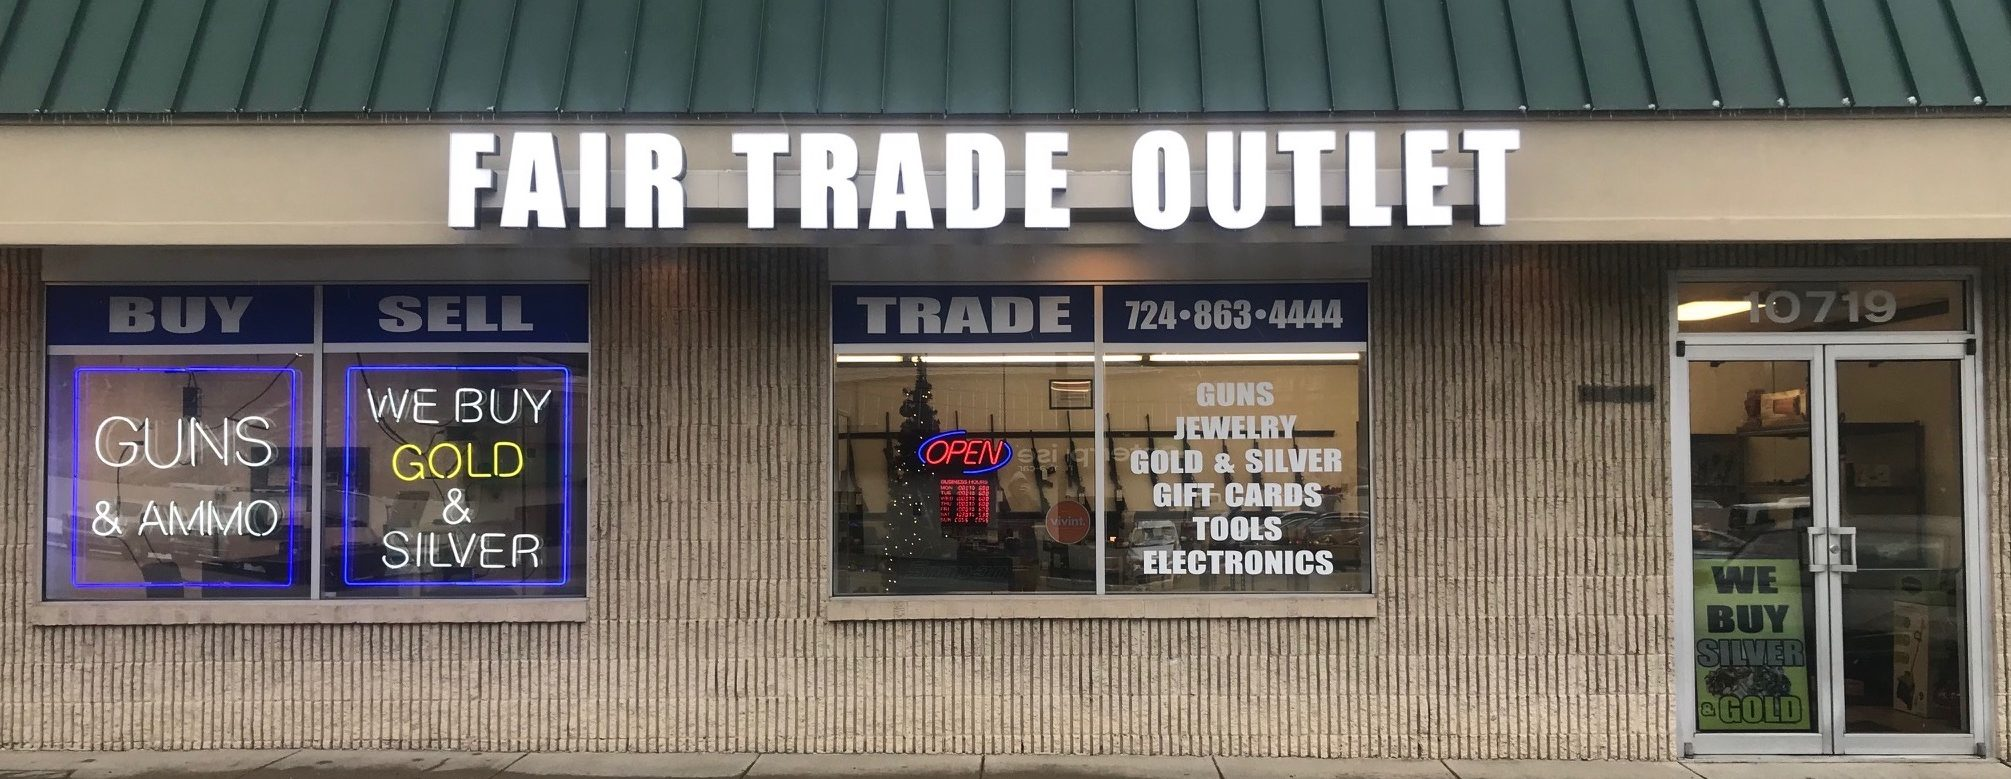 Buy Sell Trade in Irwin, PA | Trade Shop | Coins & Electronics